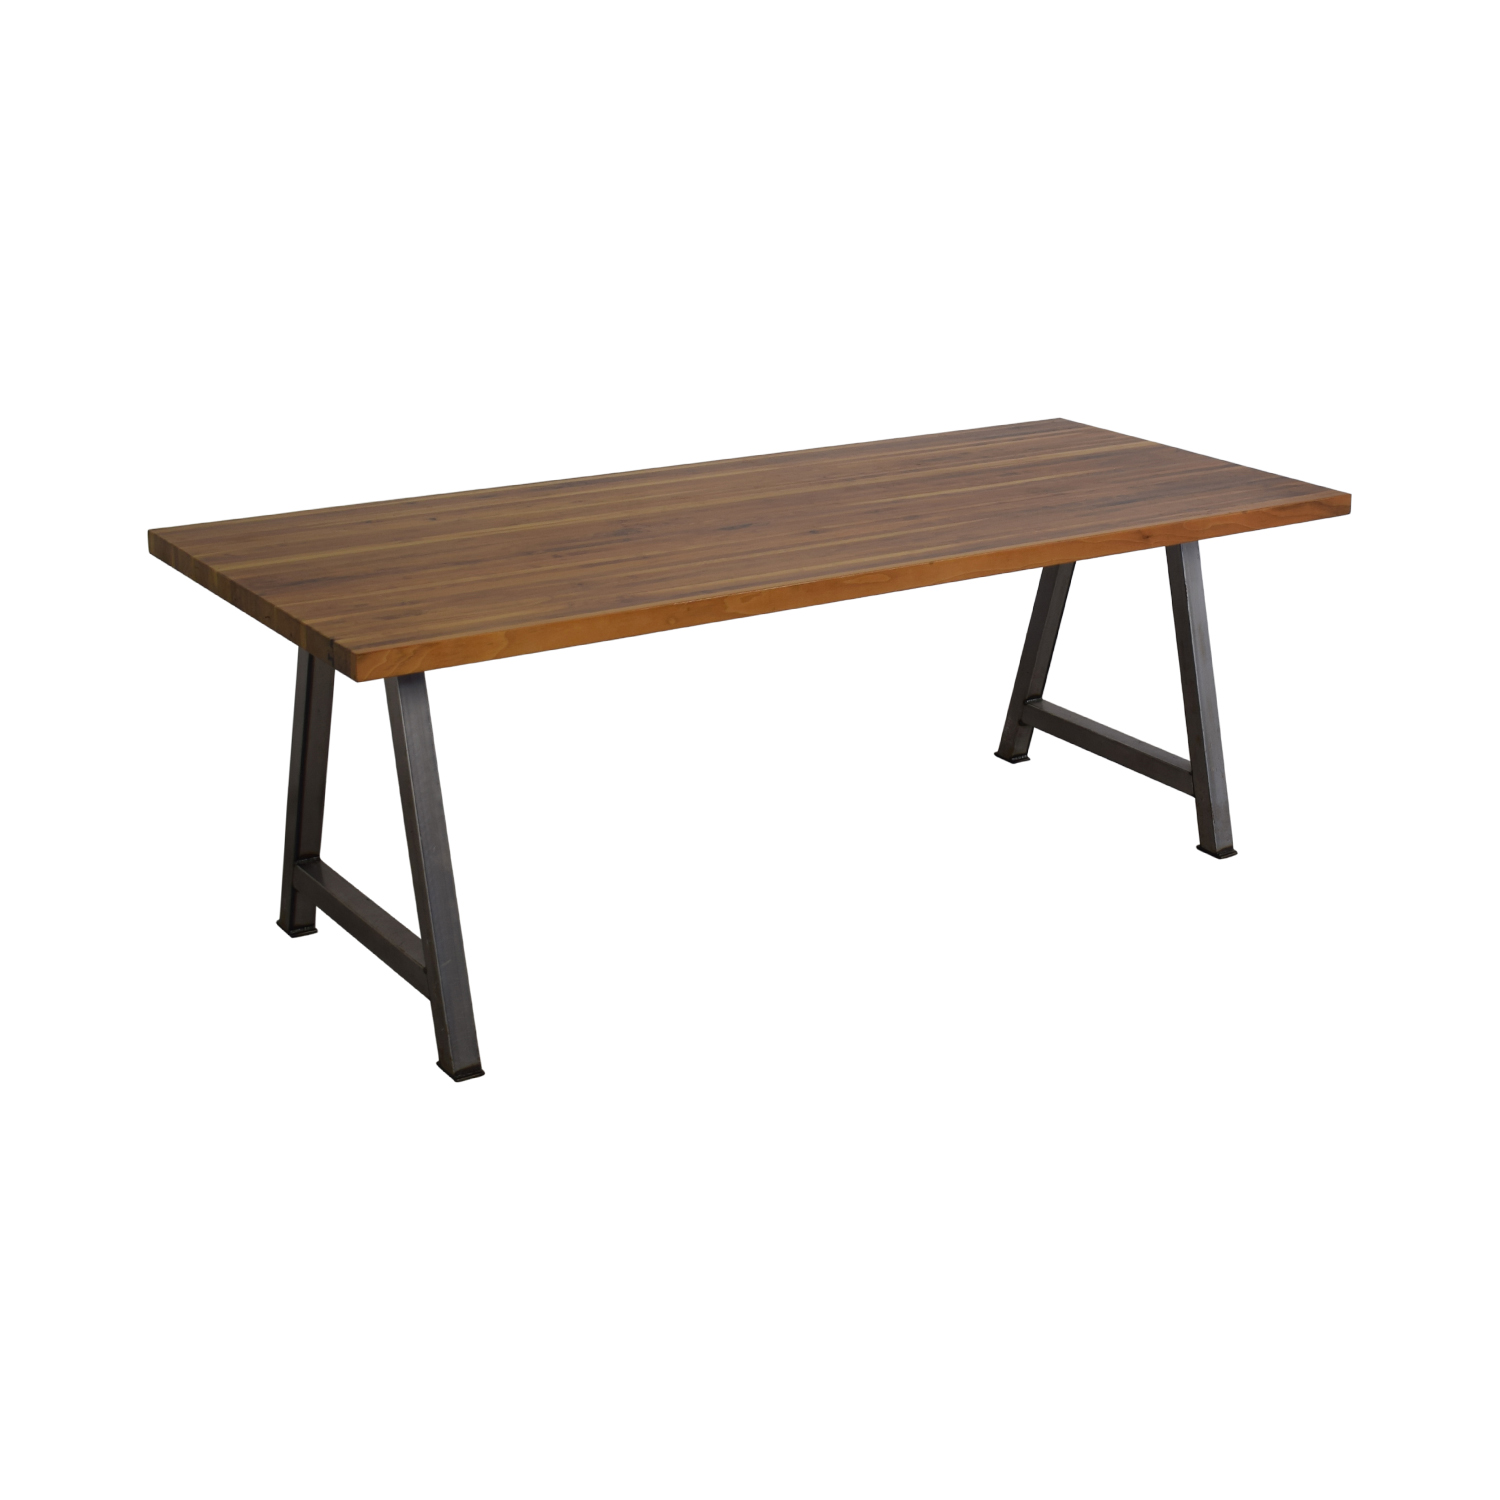 Custom Butcher Block Table second hand